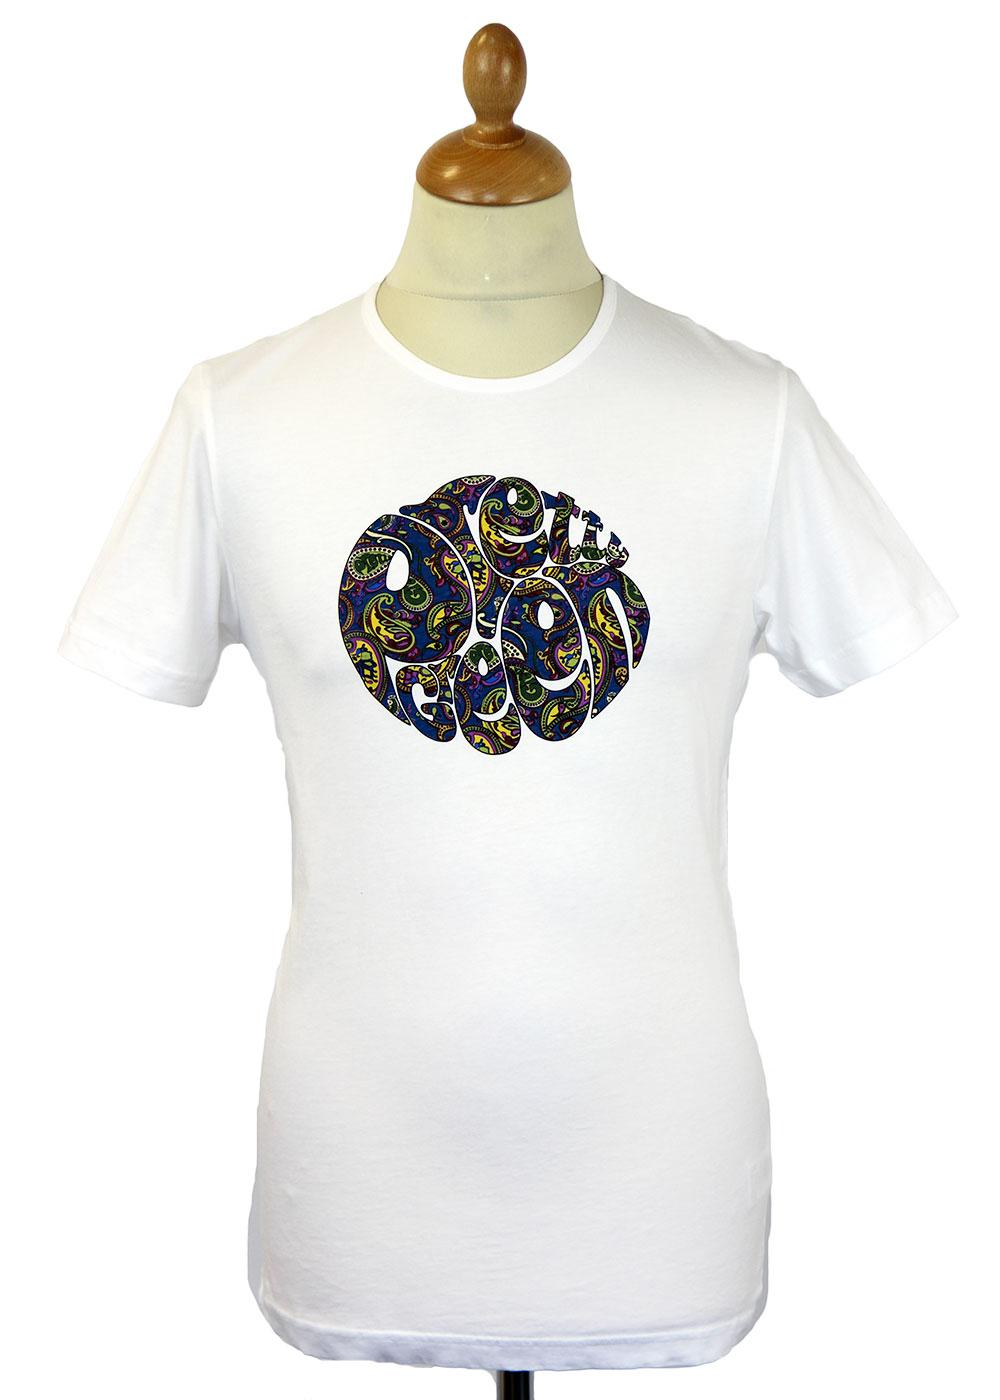 676c9527bc5 PRETTY GREEN Retro 60s Mod Paisley Logo T-shirt in White